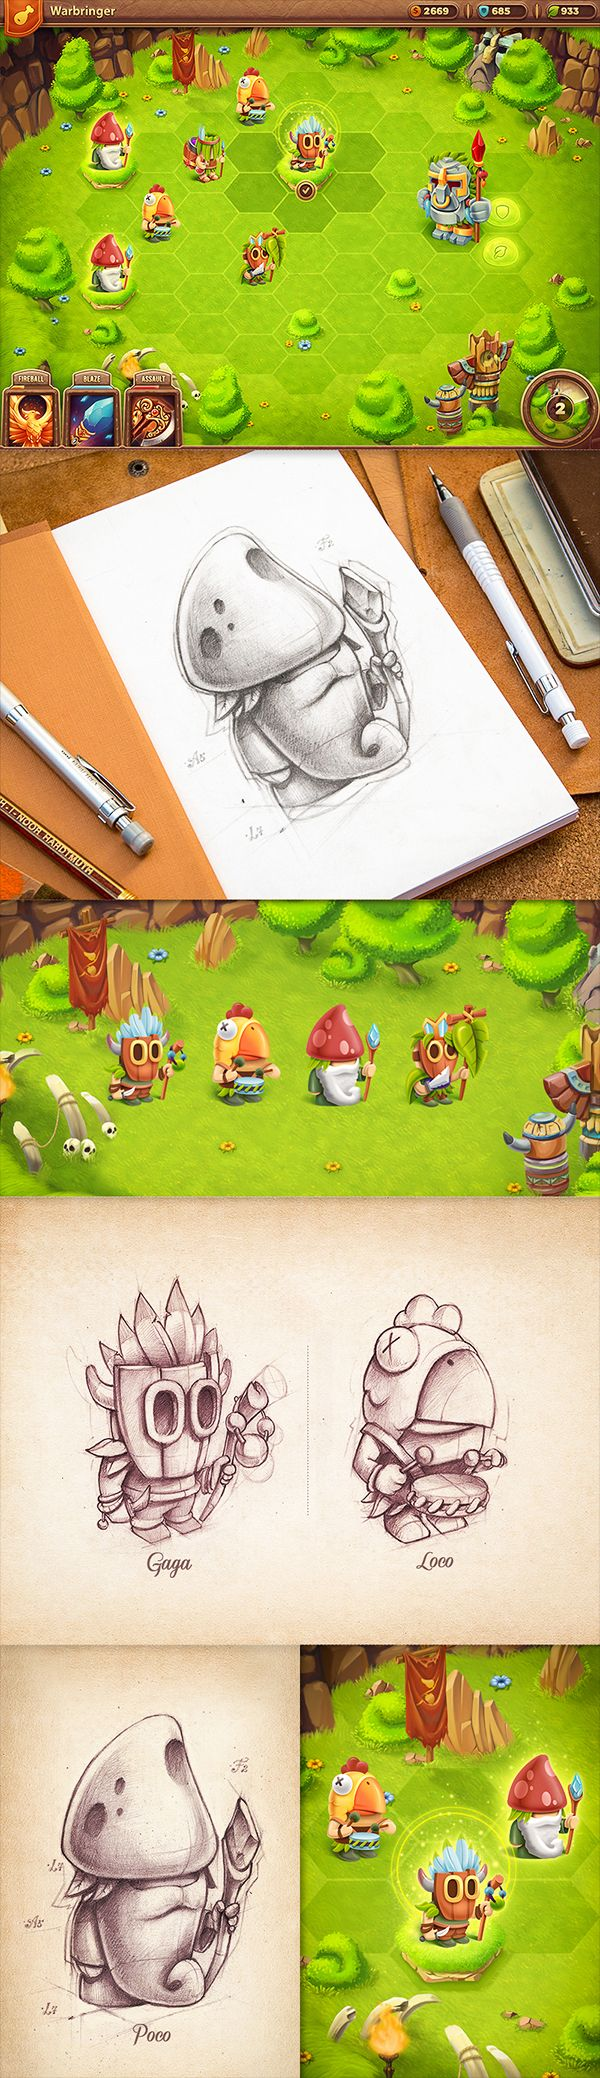 iOS game prototypes  concepts by Mike, via Behance